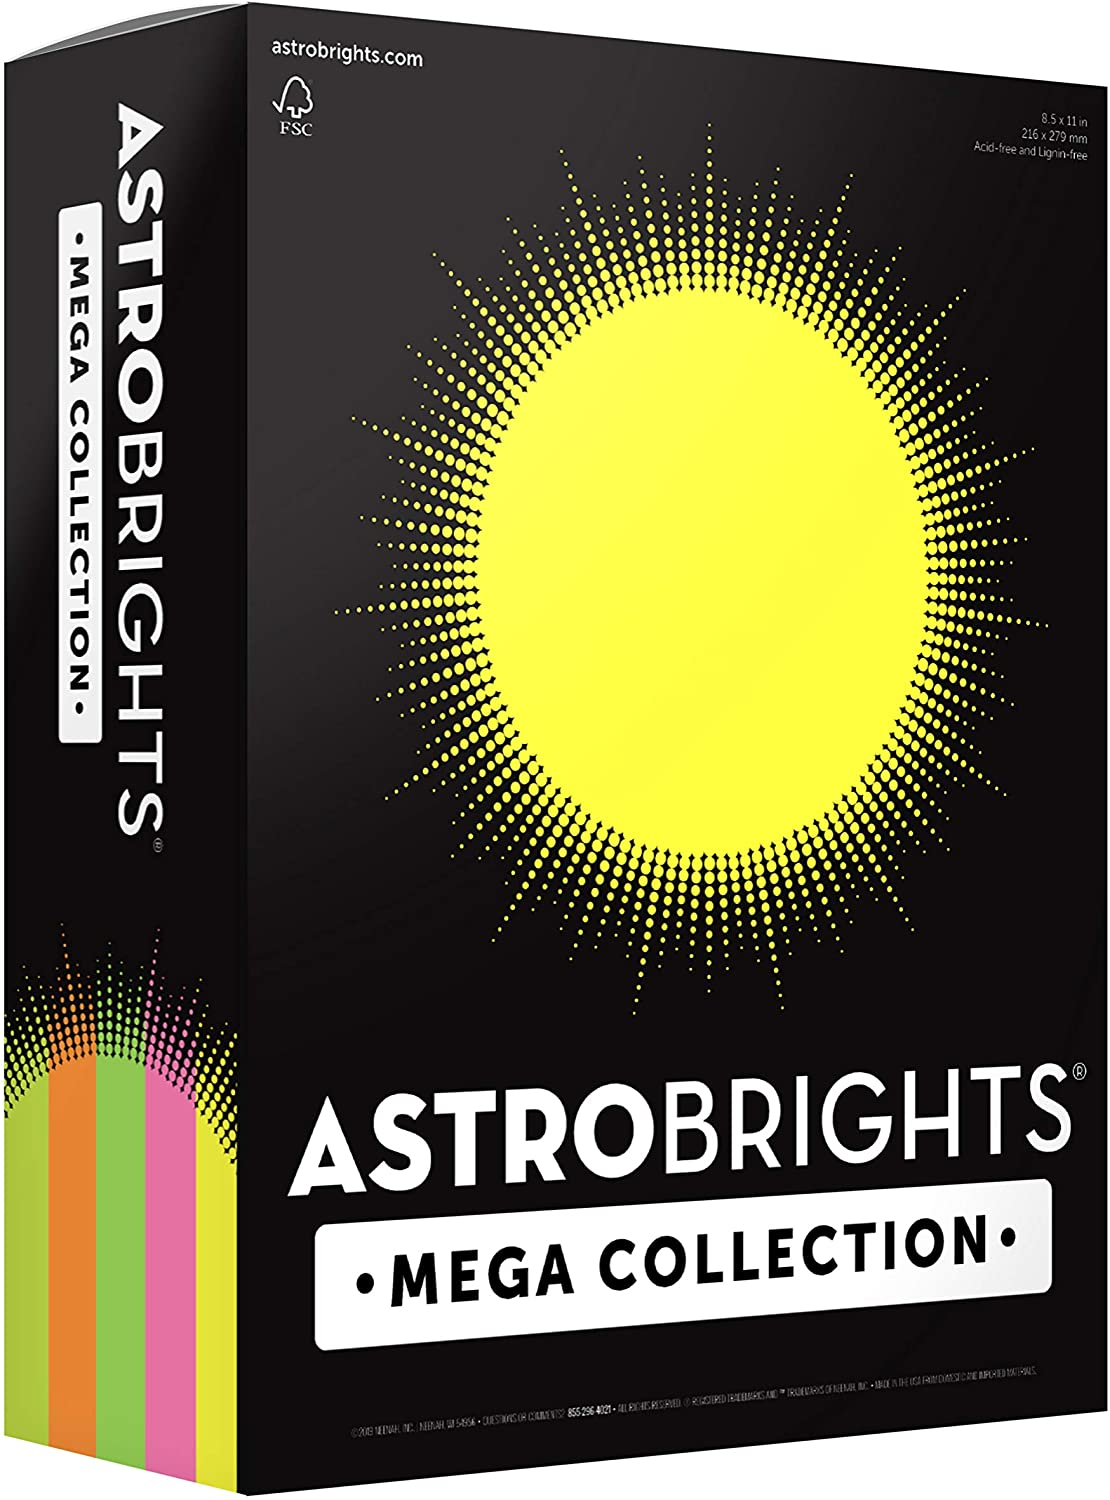 """Astrobrights Mega Collection, Colored Paper, """"Flourescent"""" 5-Color Assortment, 625 Sheets, 24 lb/89 gsm, 8.5"""" x 11"""" - MORE SHEETS! (91700), Assorted : Office Products"""